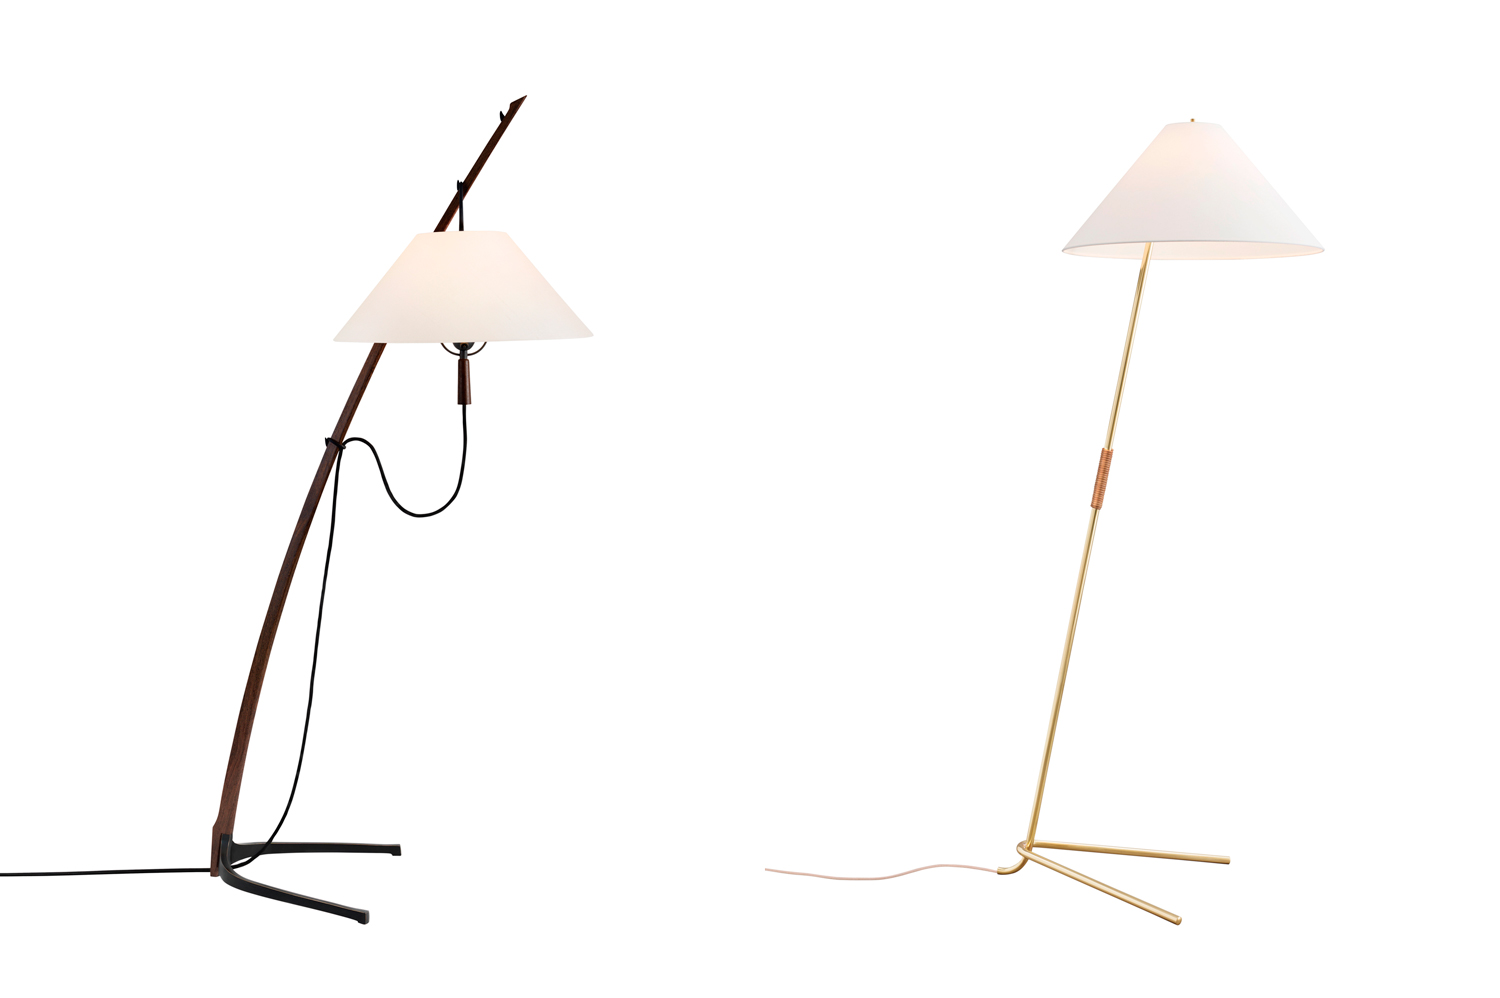 Dornstab Floor Lamp & Hase Floor Lamp by KALMAR Werkstatten | Yellowtrace